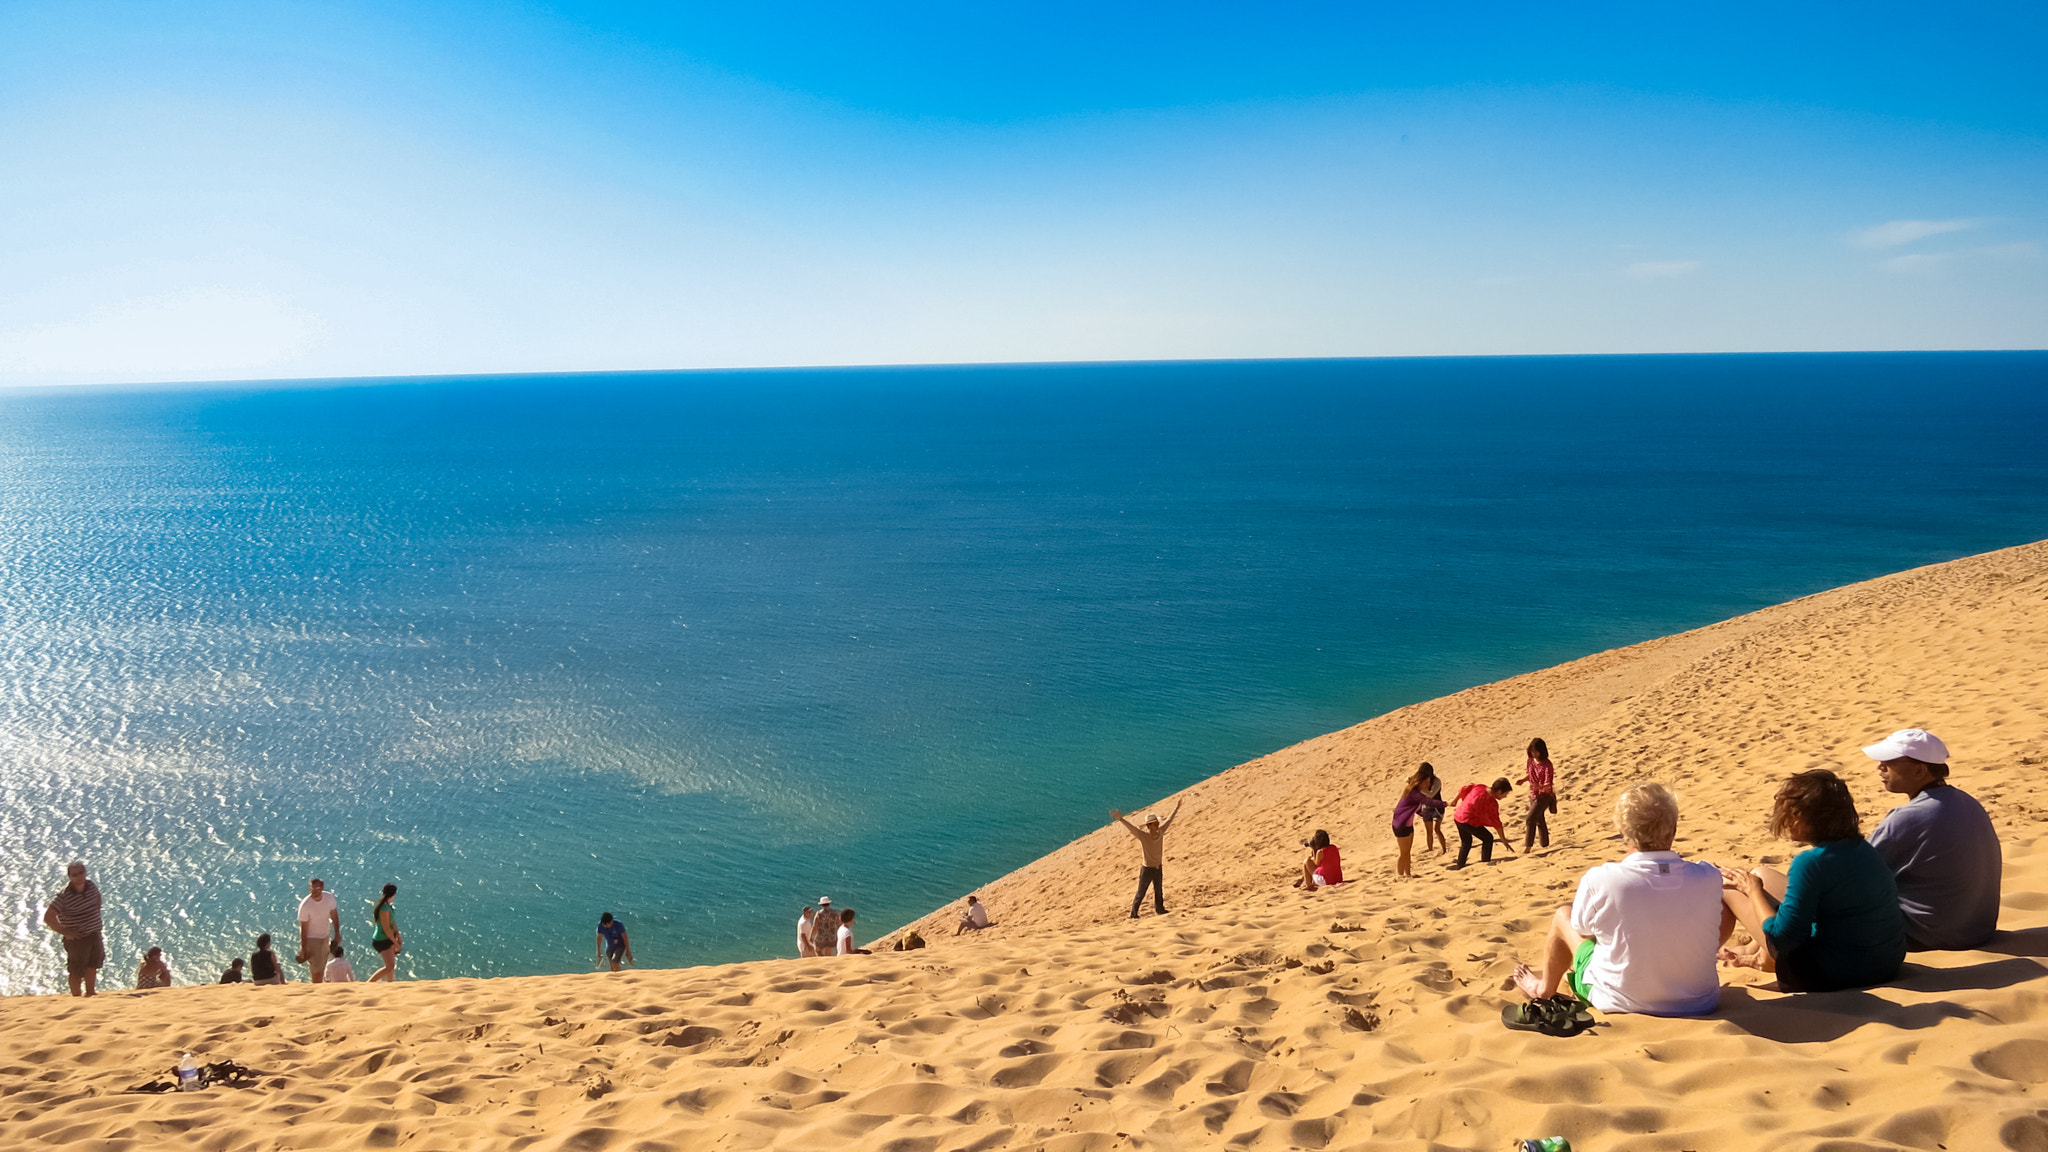 Photograph Dunes by the lake by Ram Rai on 500px